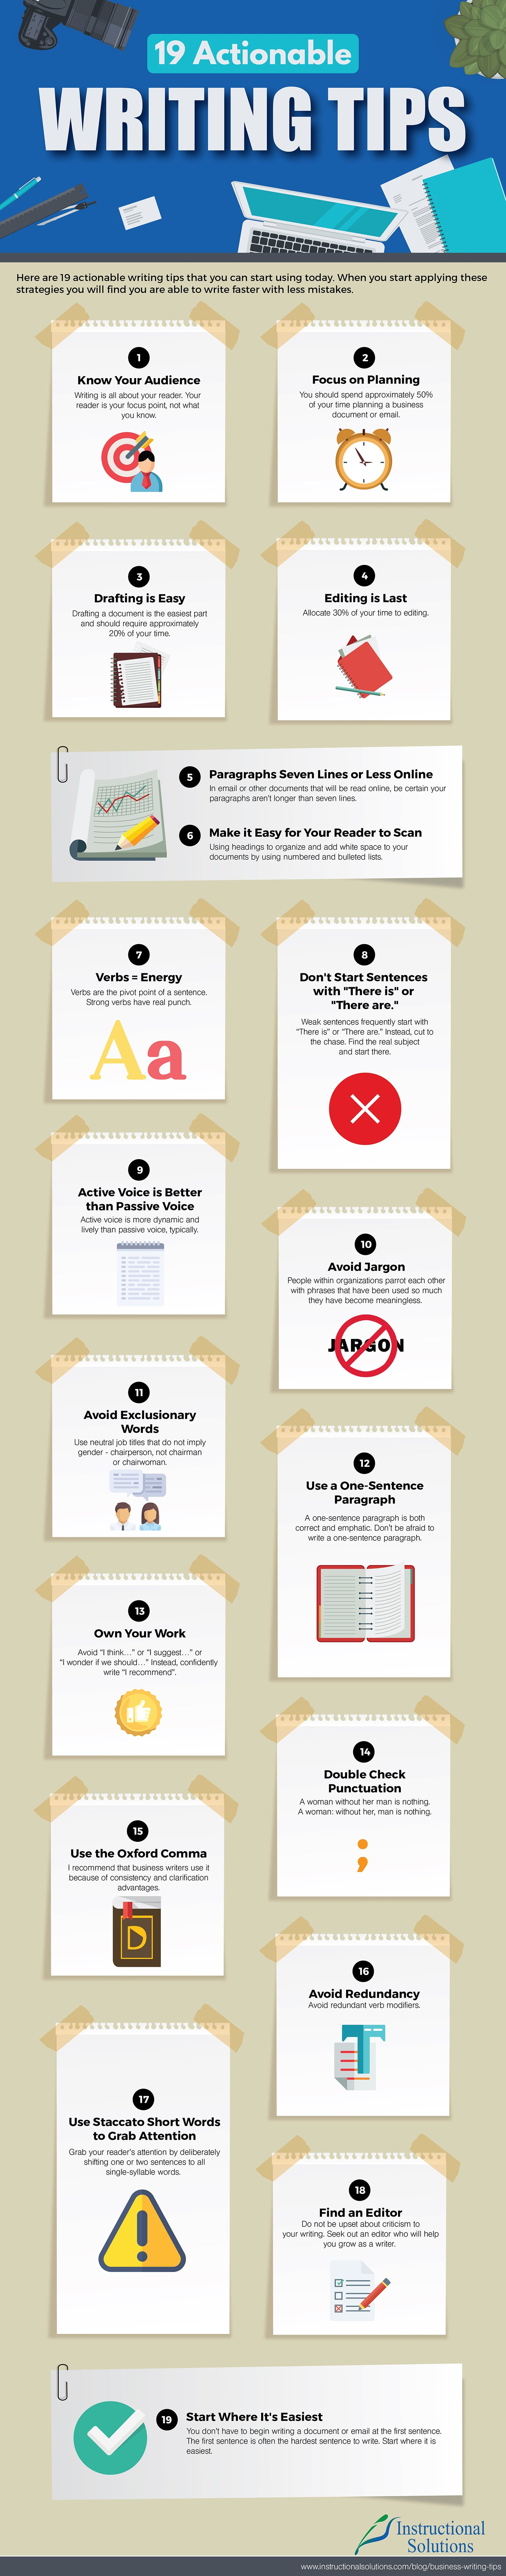 19 Tips to Immediately Improve Your Writing (Infographic)